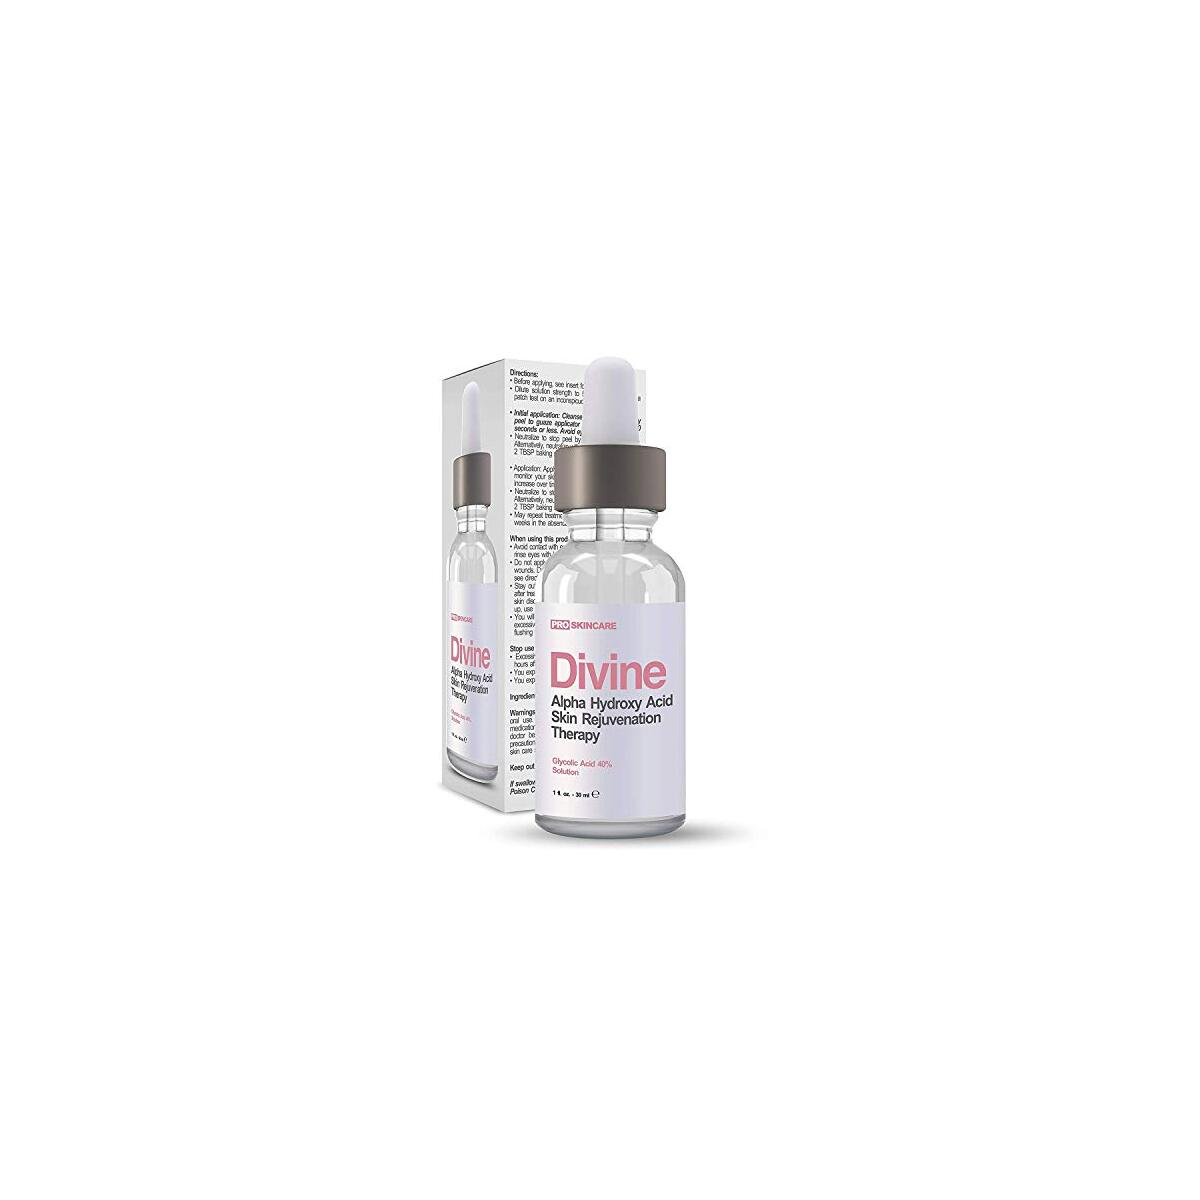 Glycolic Acid 40% (Professional Chemical Peel) Pro Strength Alpha Hydroxy Acid Skin Peel - Intense Anti-Aging Treatment For Wrinkles, Fine Lines, Brown Spots, and Acne Scarring